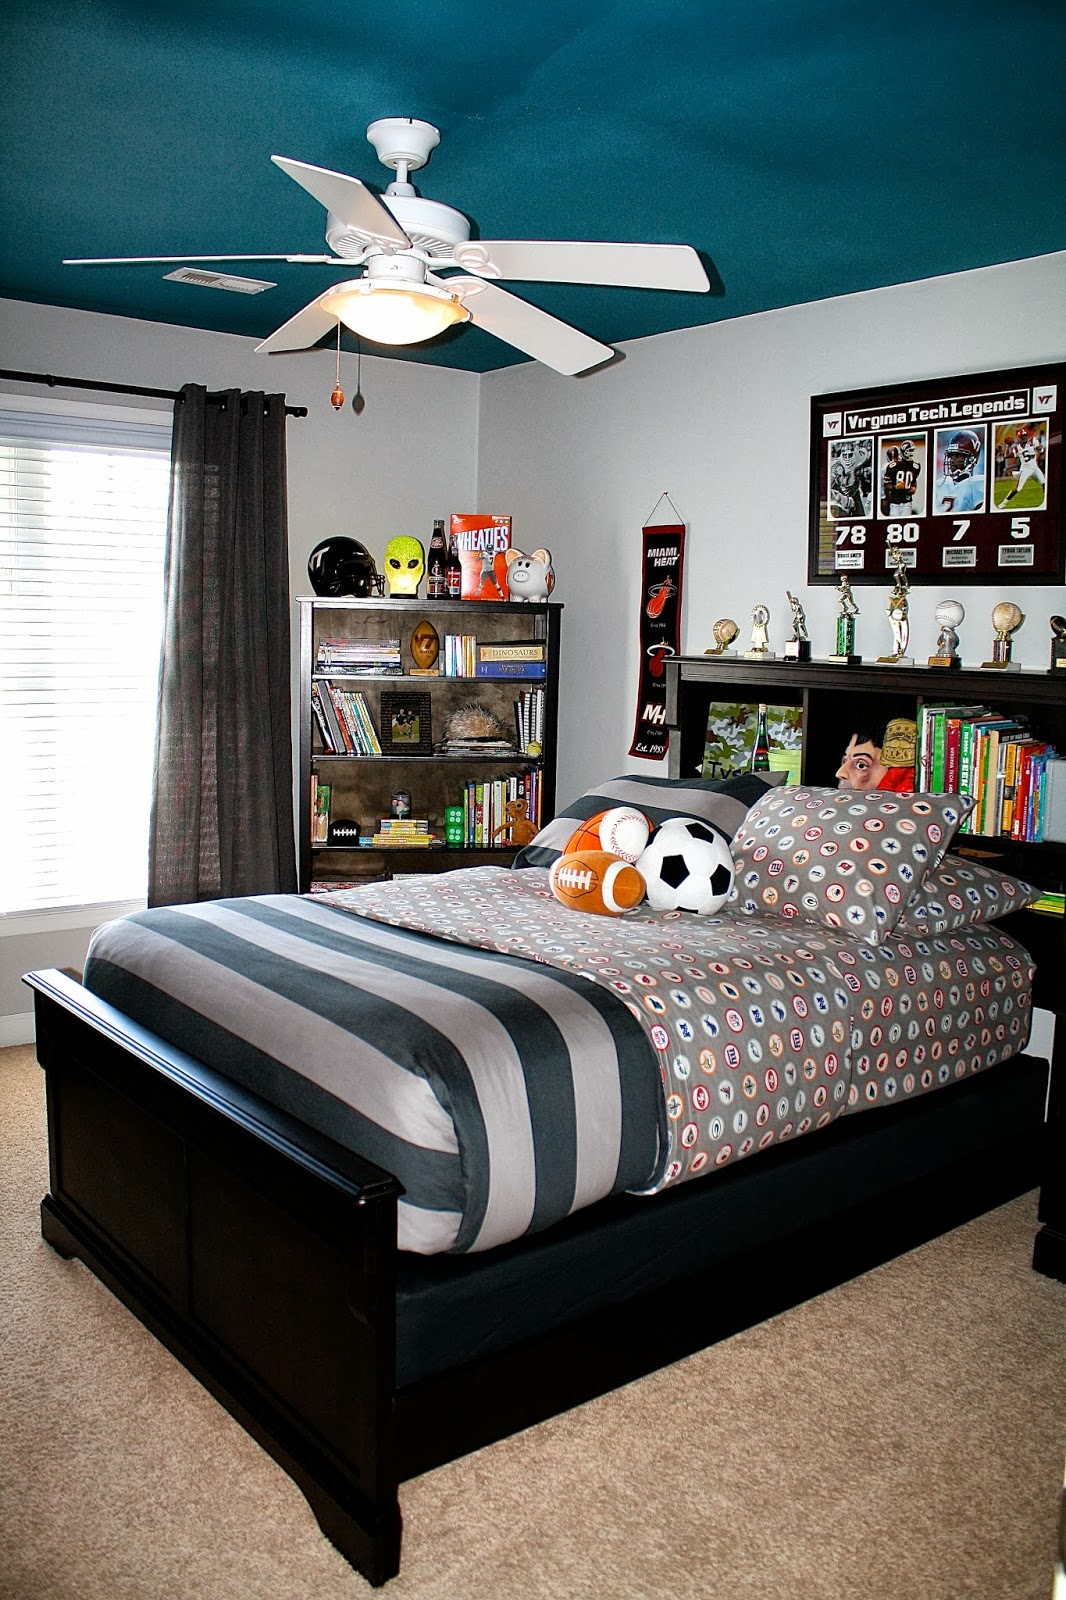 Bolling with 5 tyson 39 s nfl college football preteen for Bedroom ideas 13 year old boy